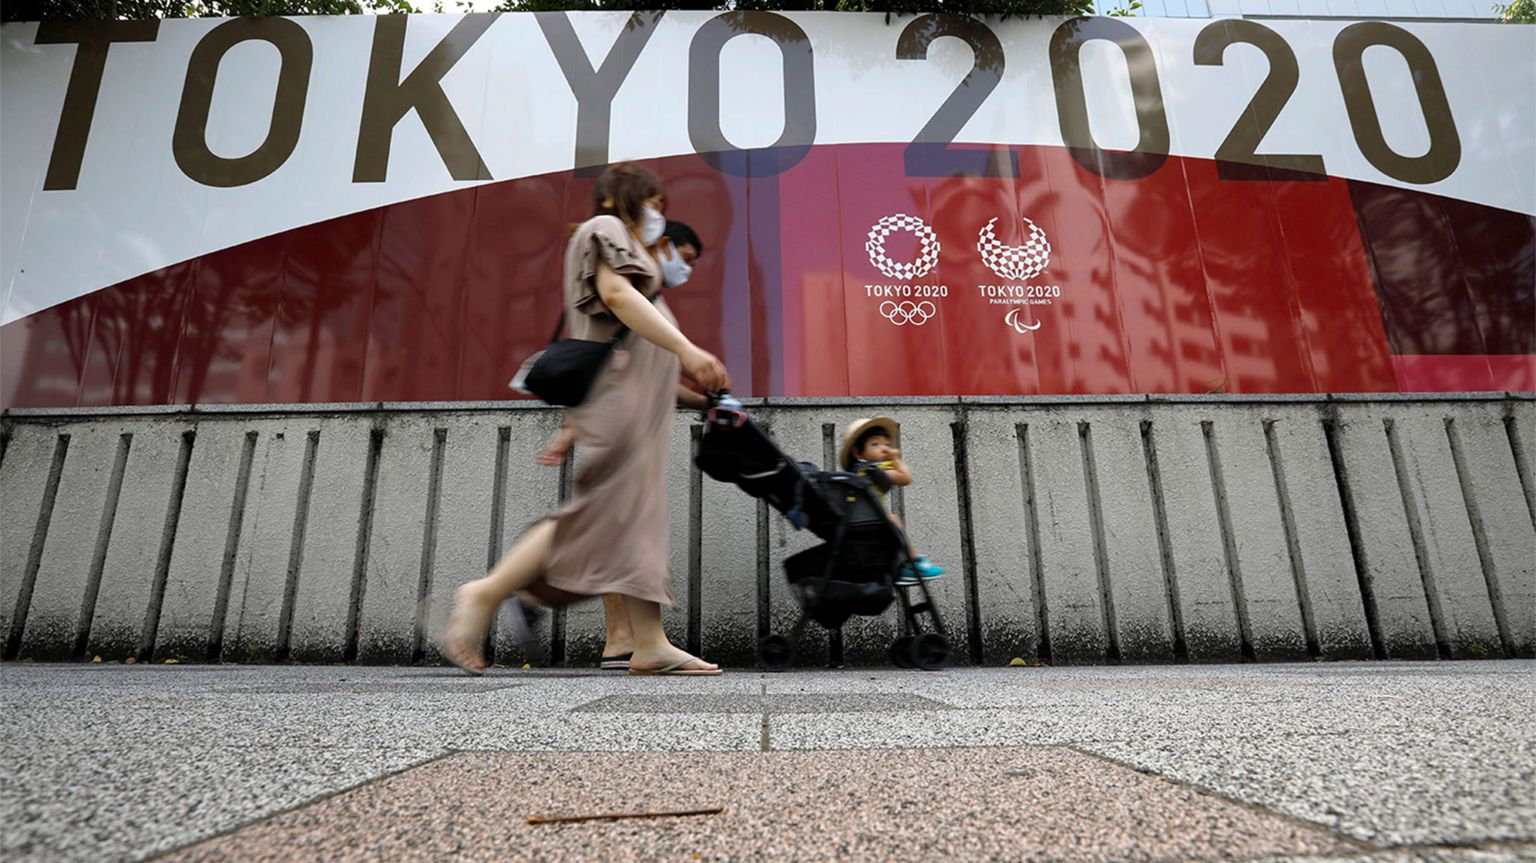 A family walks by a billboard for the Tokyo Olympics in Tokyo